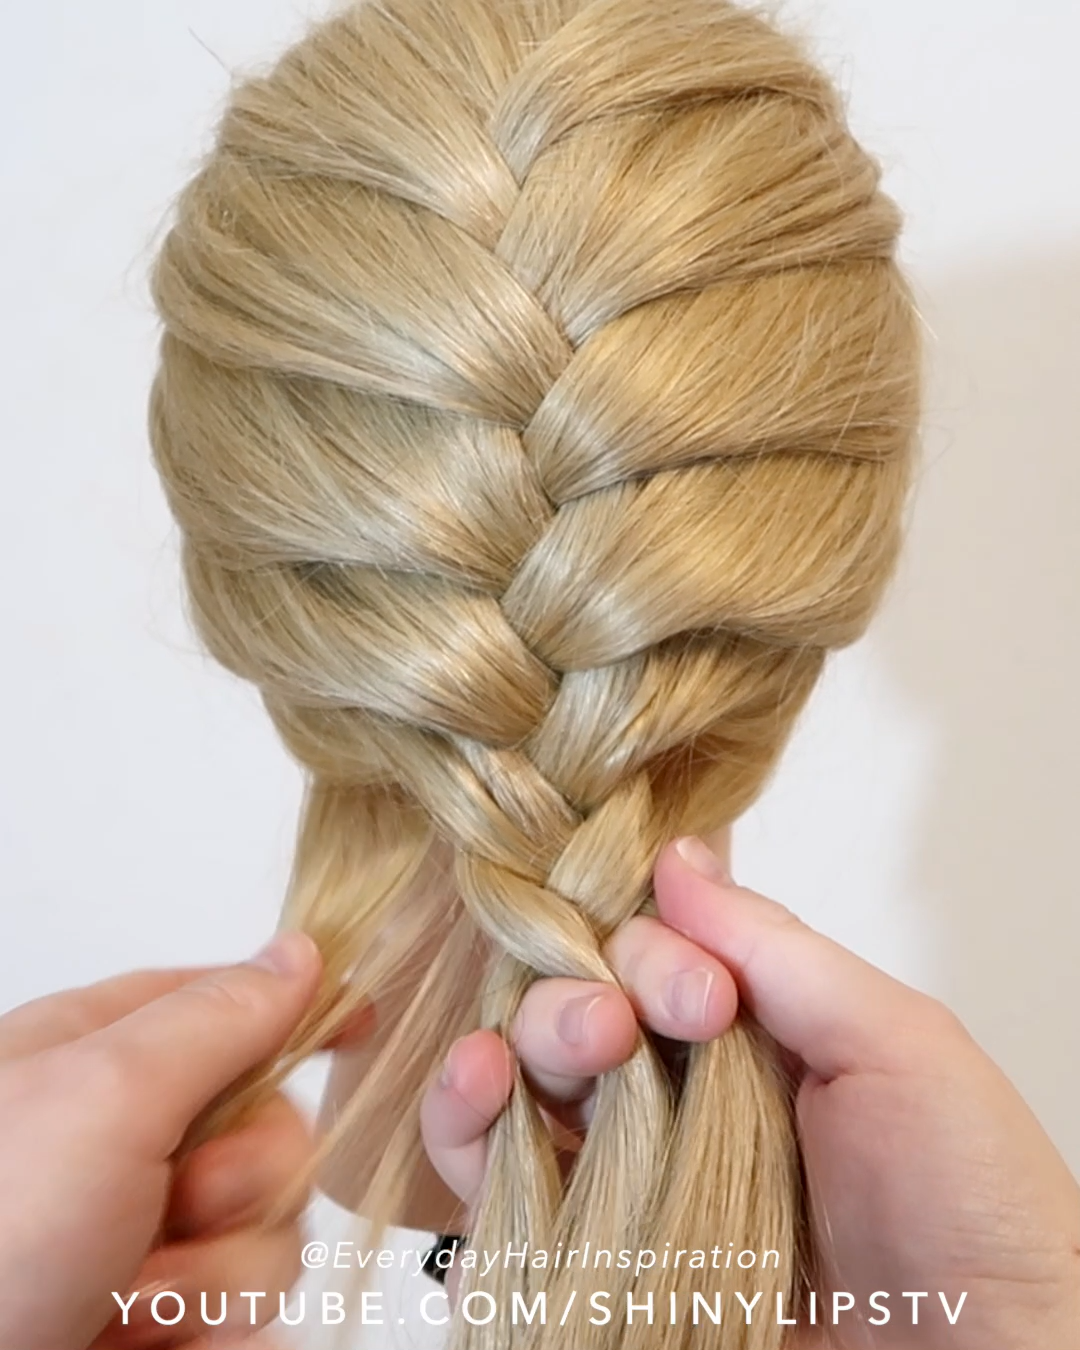 How To French Braid Click Here For The Full Video Braid Click French Full Video In 2020 Diy Hairstyles French Braid Hair Braid Videos